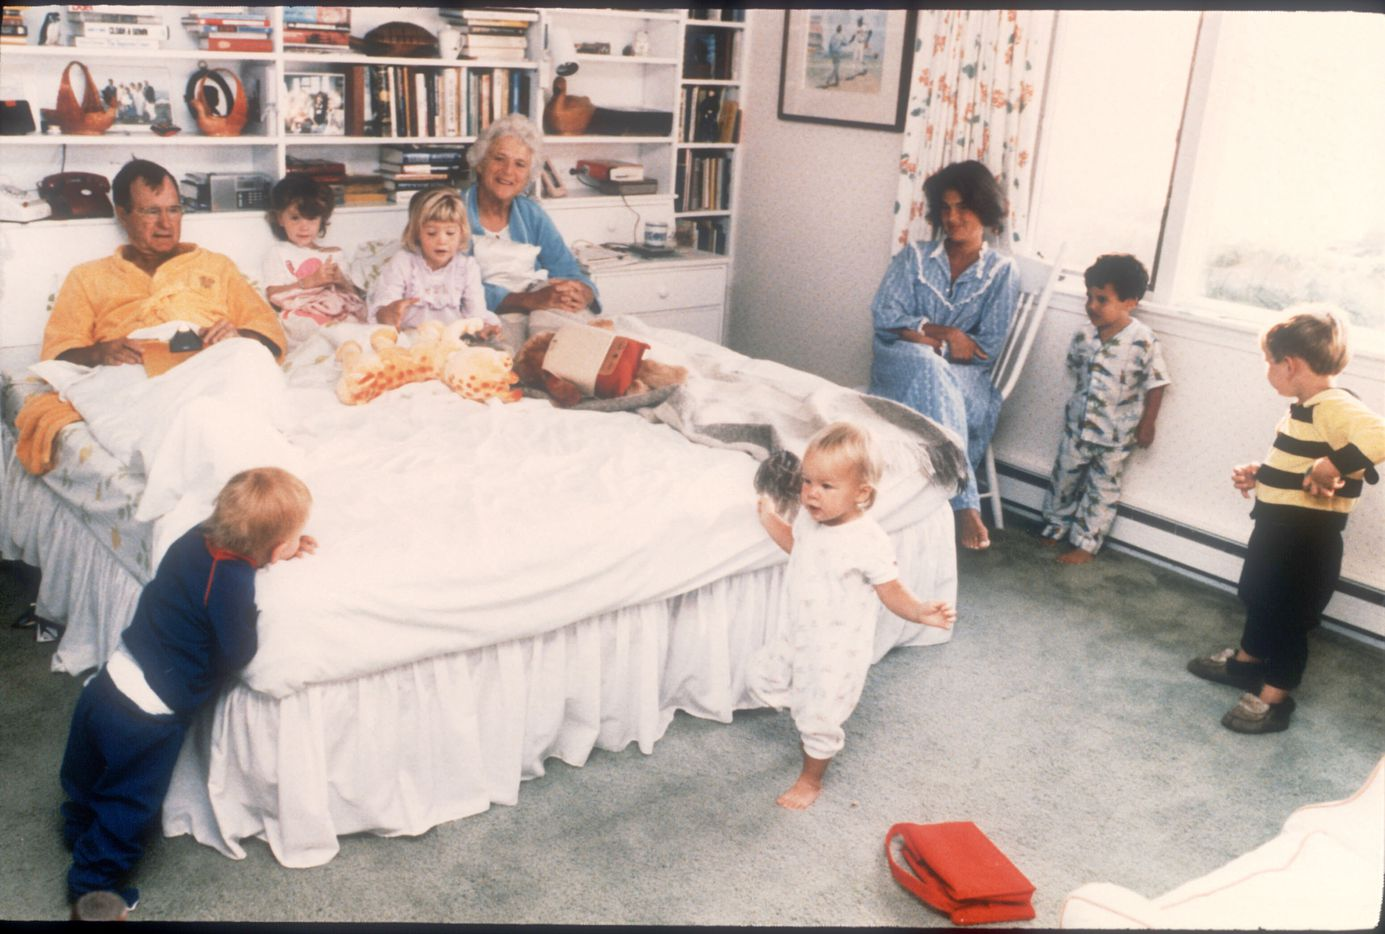 George and Barbara Bush are joined in their bedroom by six of their grandchildren at the family retreat in Kennebunkport, Maine, in 1987. George H.W. was vice president at the time. The spontaneous moment, shot by George H.W. Bush's personal photographer for use in Life magazine, became an iconic photo of the Bush family.